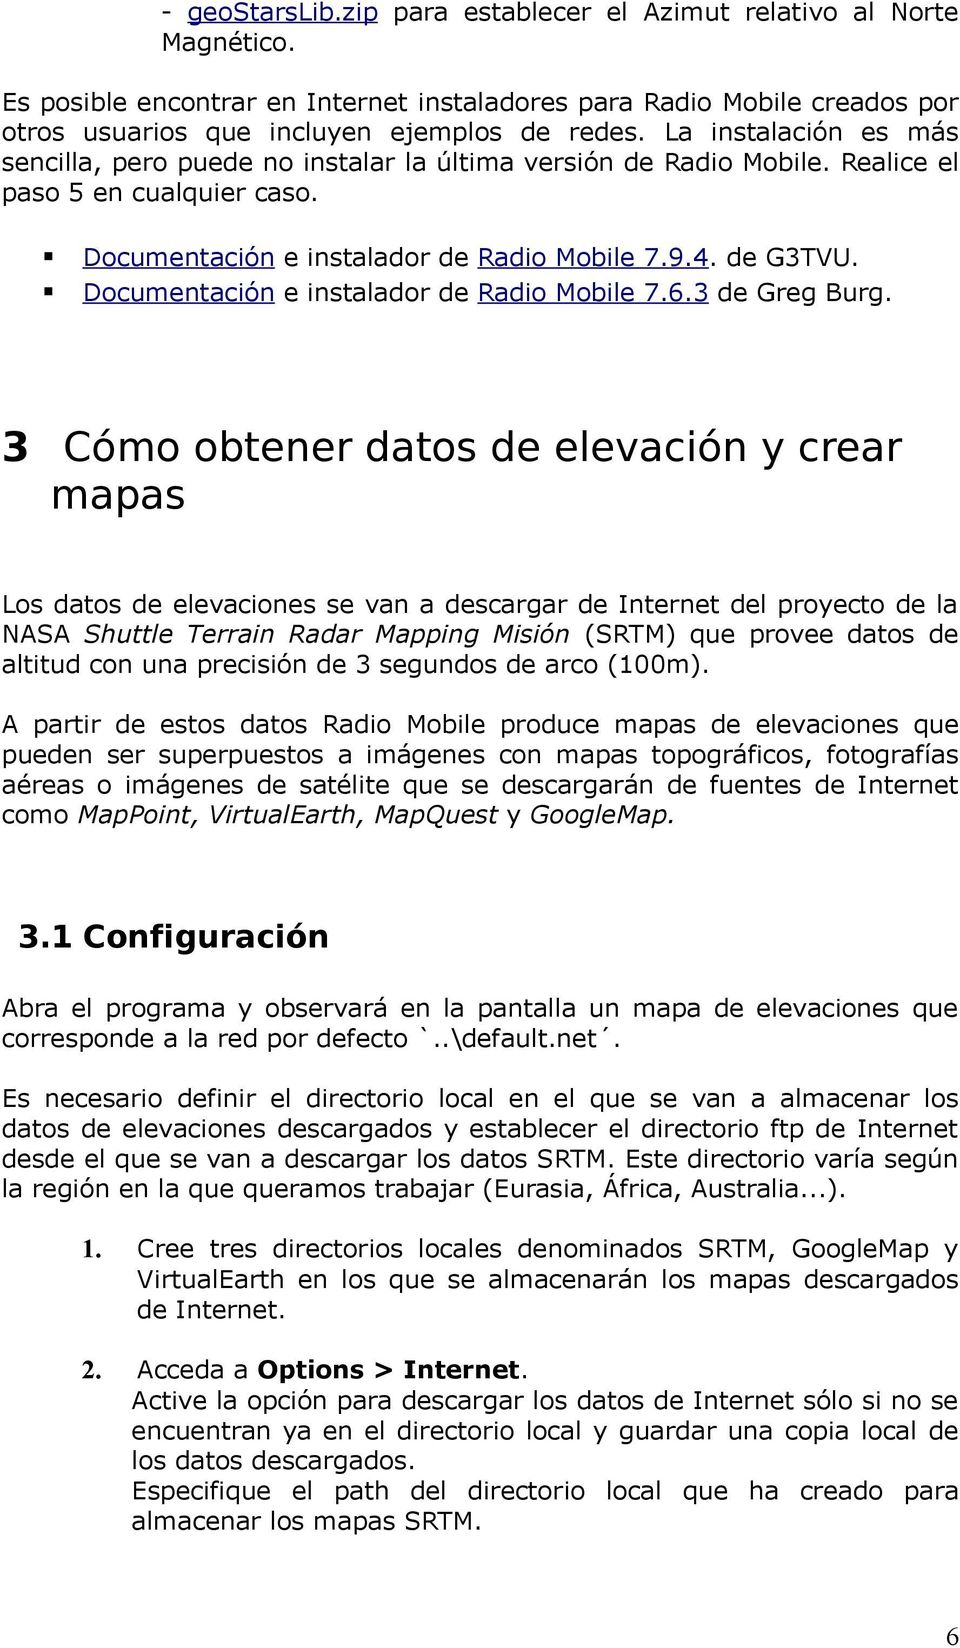 Documentación e instalador de Radio Mobile 7.6.3 de Greg Burg.